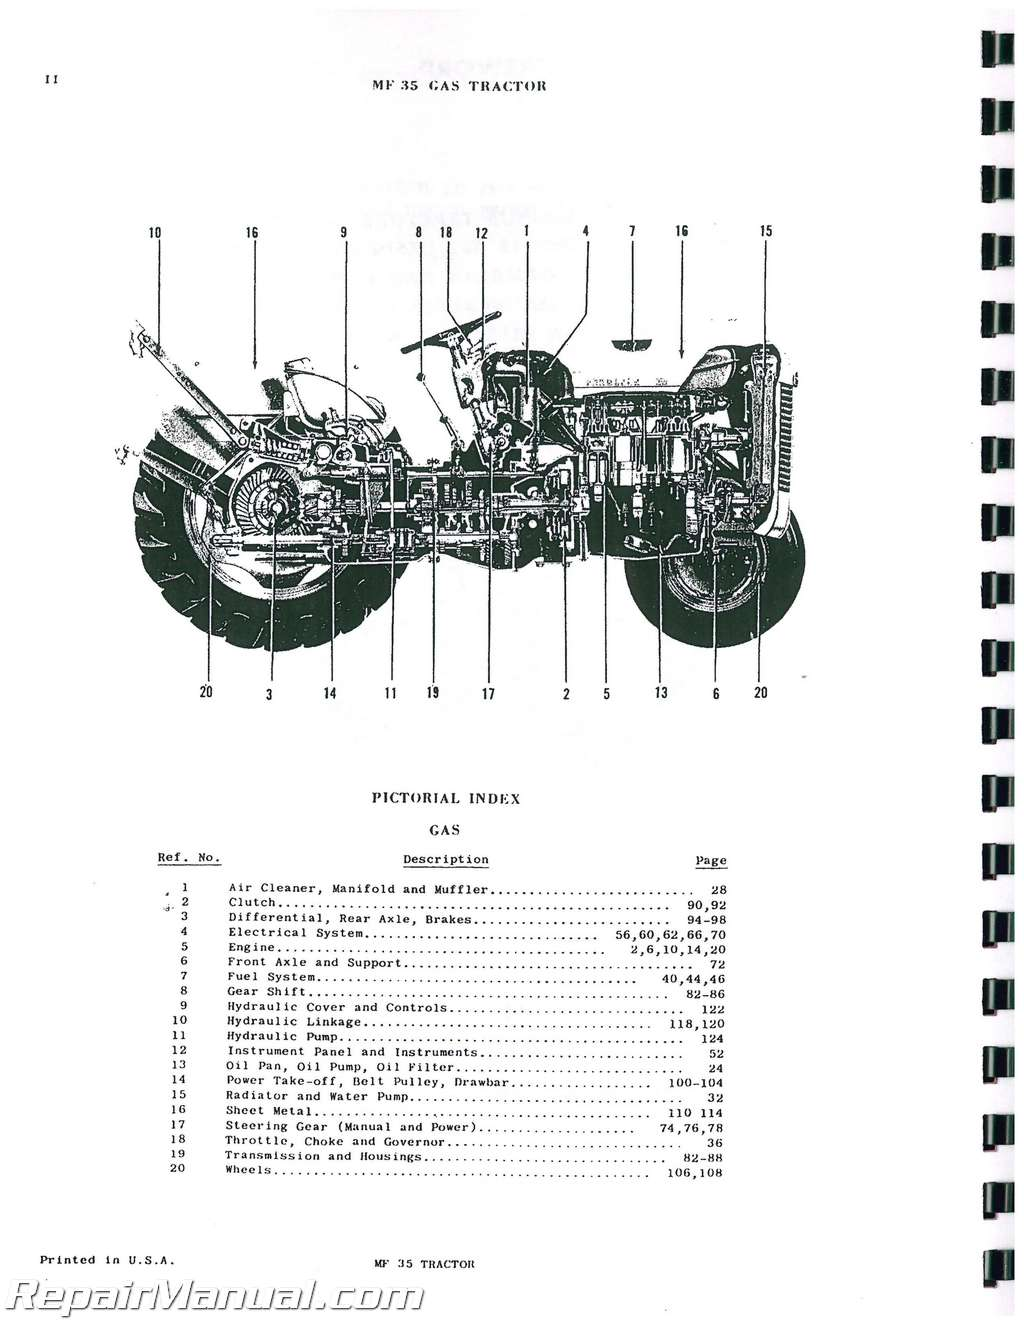 Massey Ferguson MF 35 Gas Diesel Tractor Parts Manual : JS